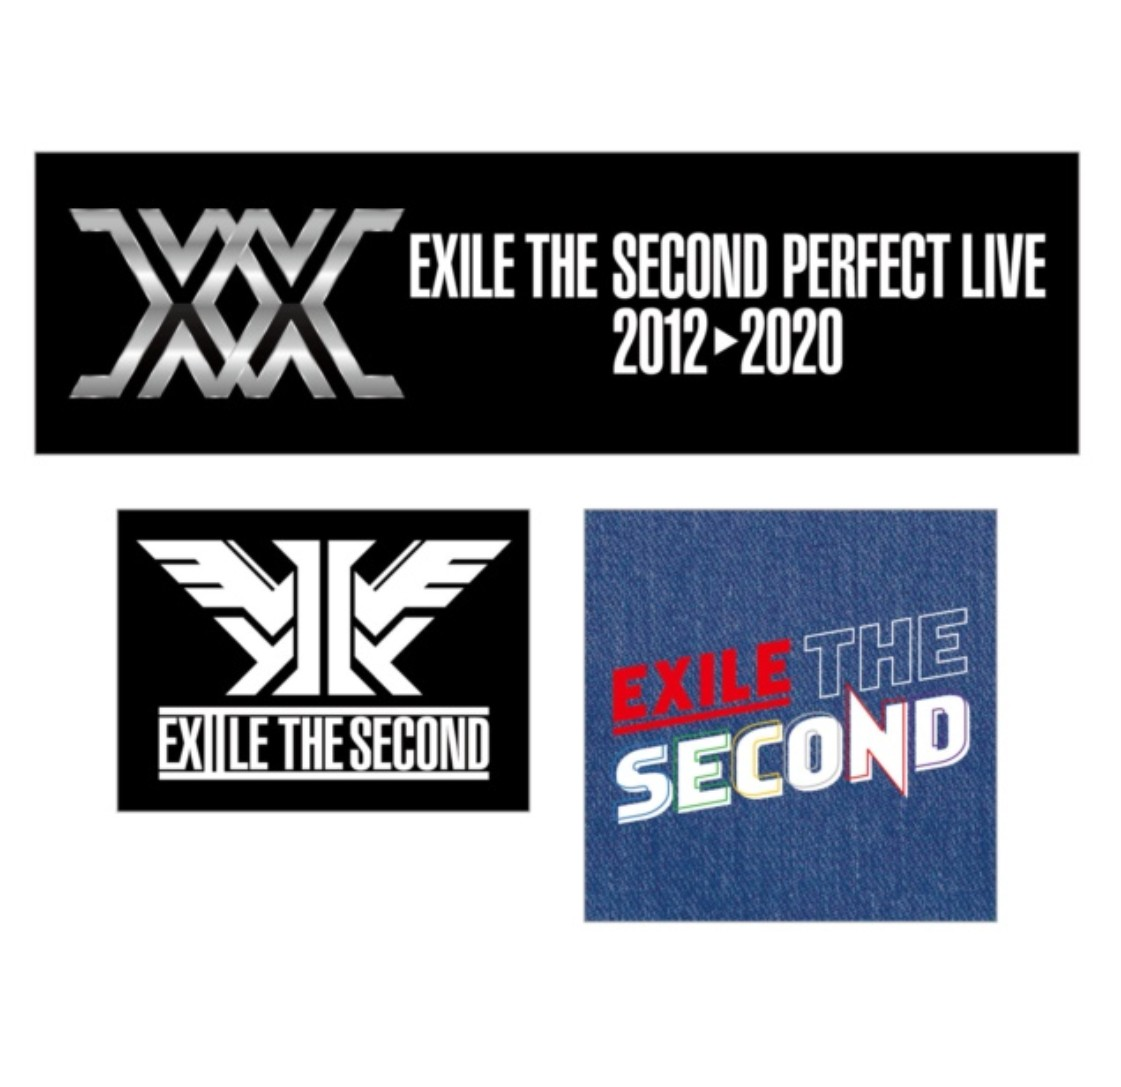 【SHOP】7/10(金)正午よりステッカー3枚セット発売!!・EXILE THE SECOND PERFECT LIVE・三代目J SOUL BROTHERS PERFECT LIVE・SPECIAL SHOWCASE・GENERATIONS PERFECT LIVE・RMPG・FNT・BBZ・E-girls PERFECT LIVE